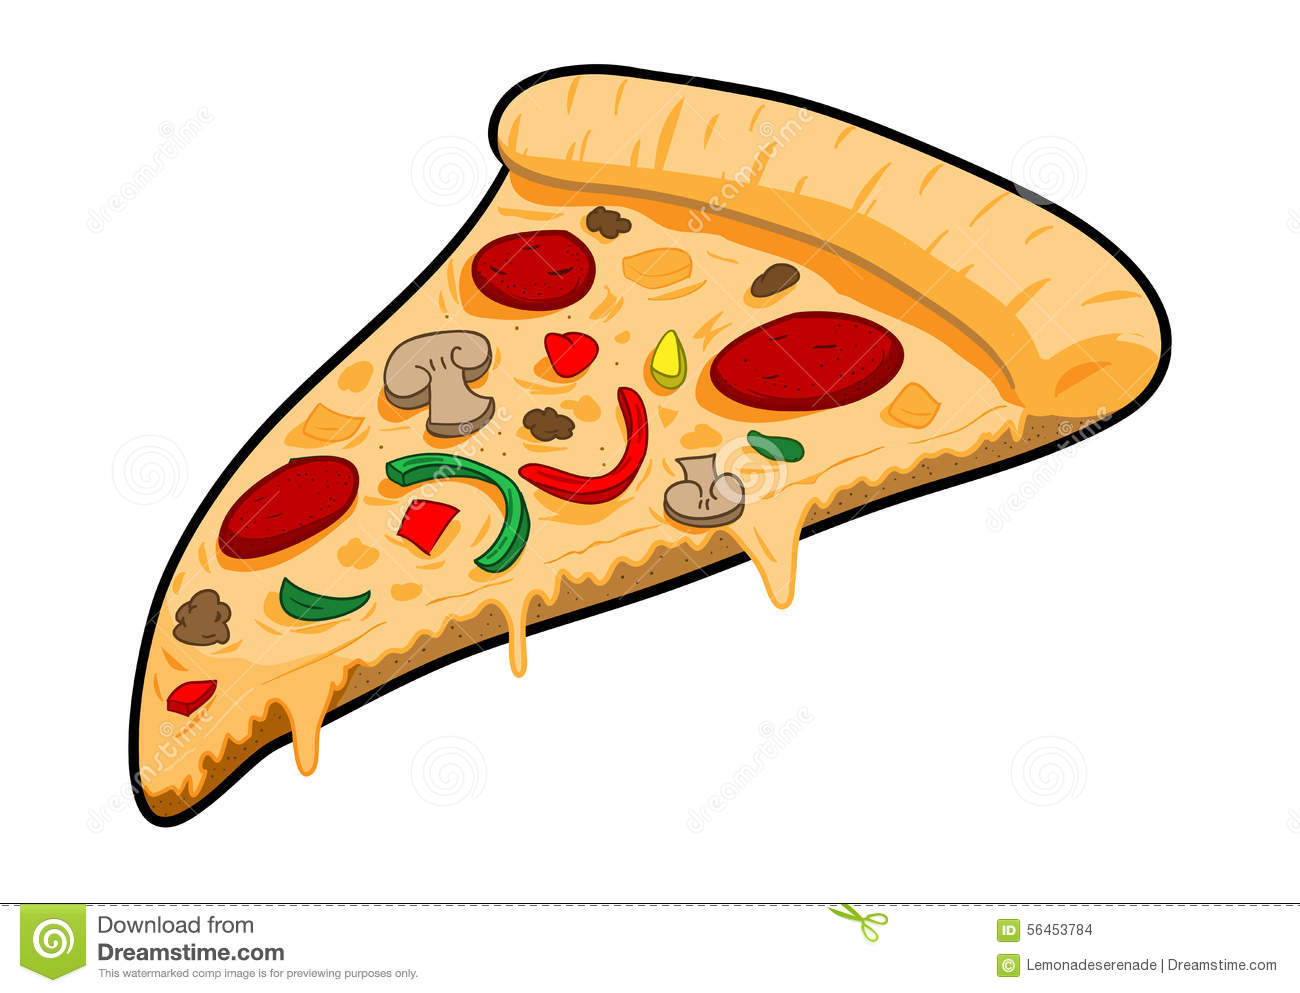 une part de pizza illustration de vecteur illustration du pizza slice clipart no background clipart pizza slice black and white